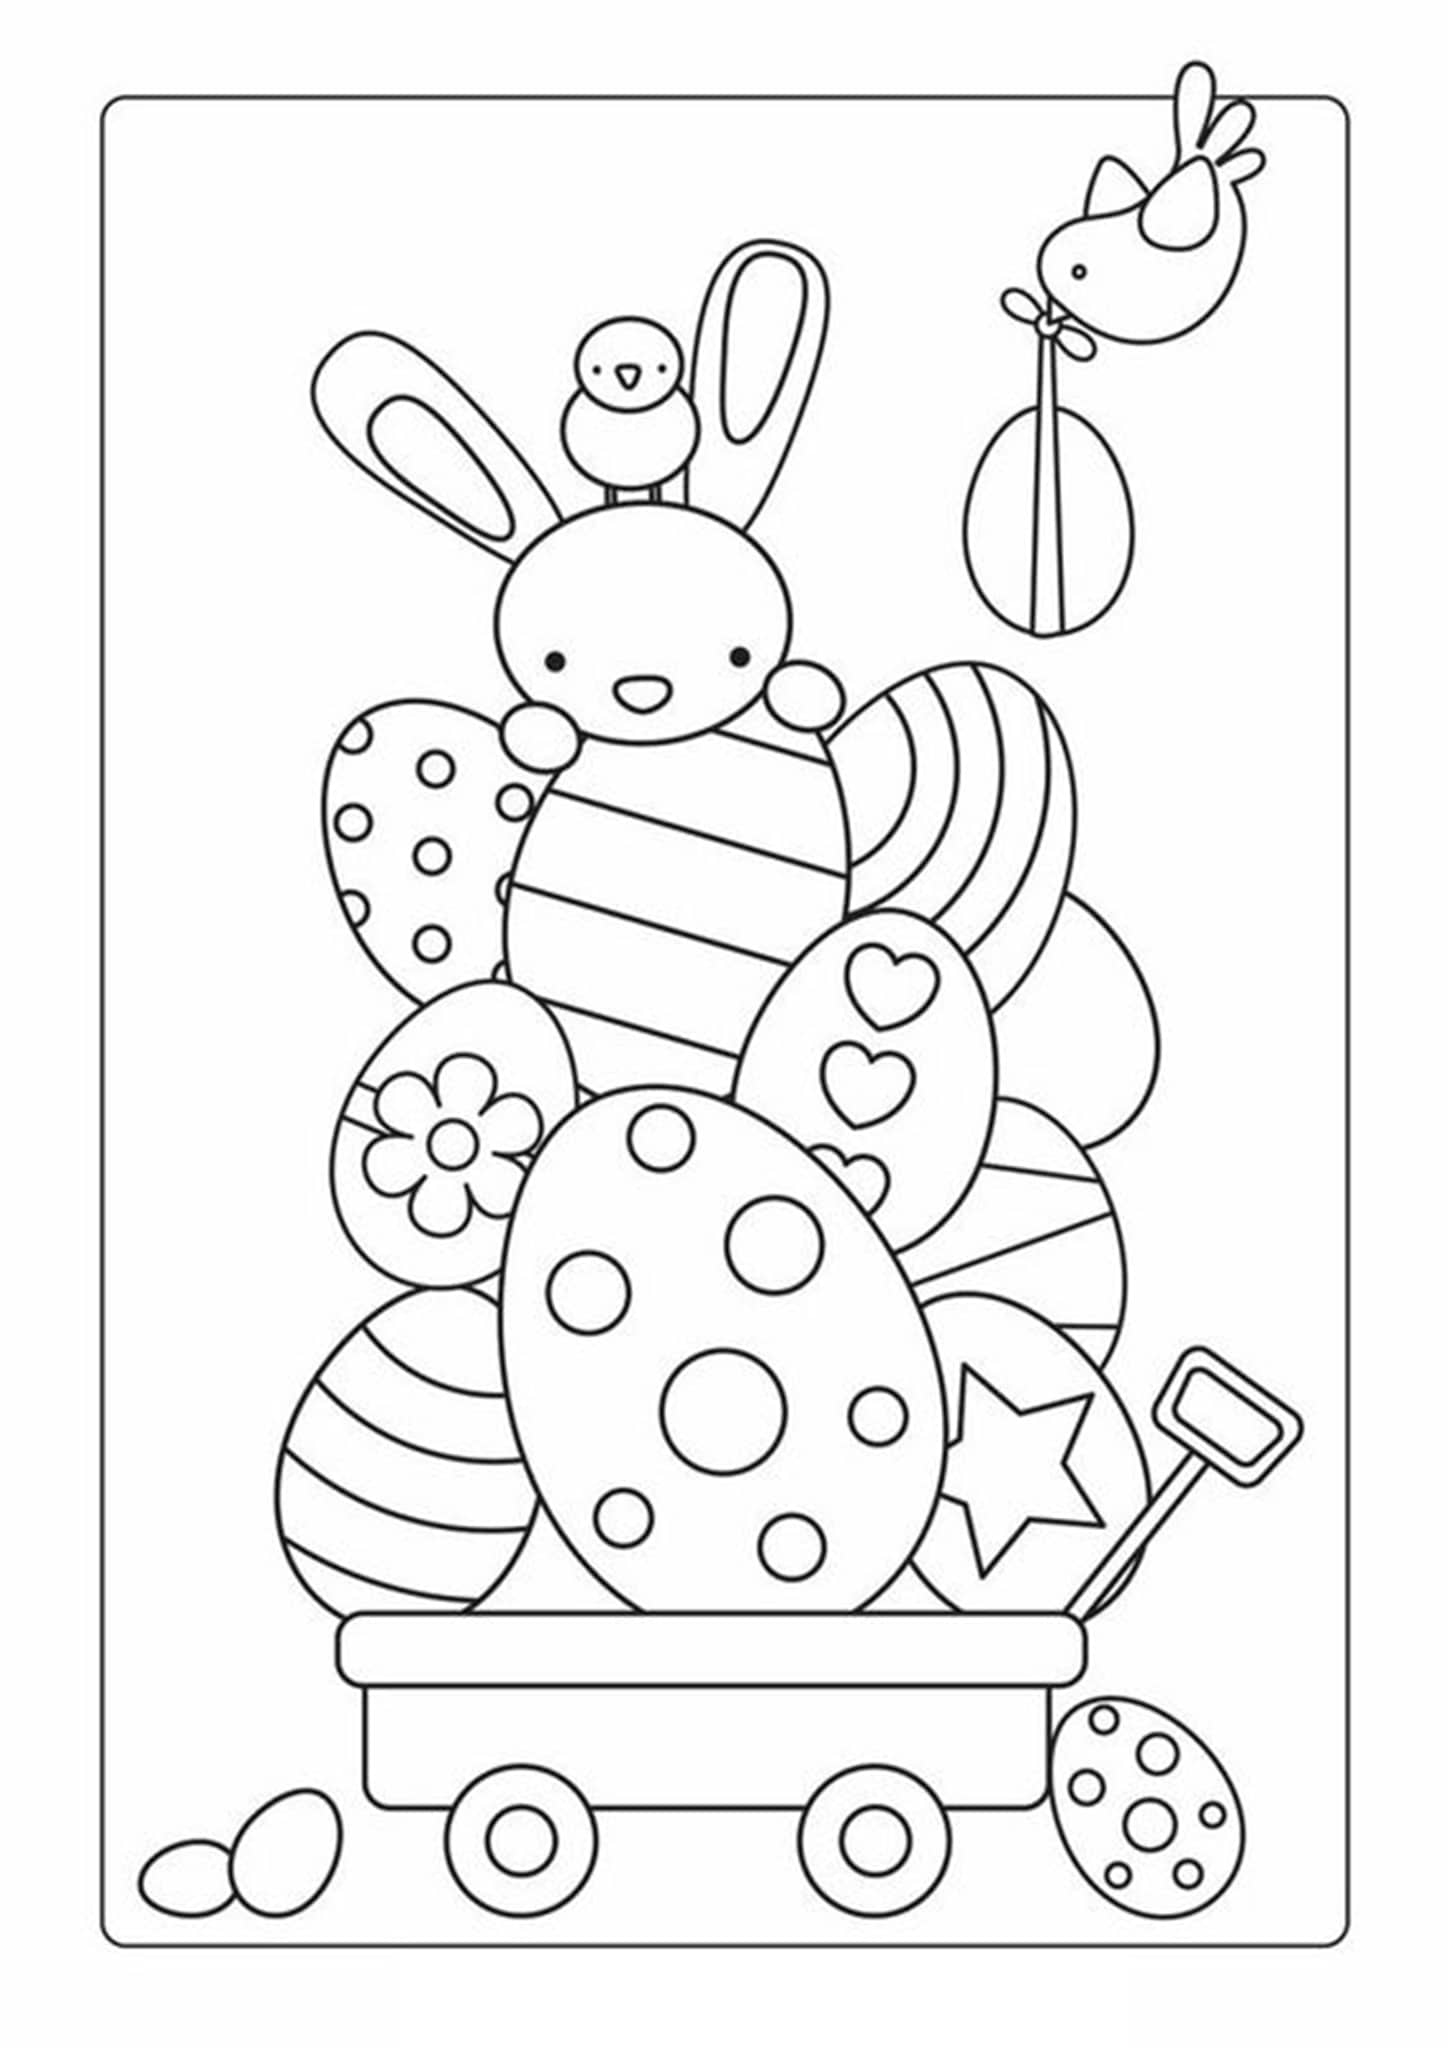 bunny coloring pages free baby bunnies coloring pages download and print for free coloring pages free bunny